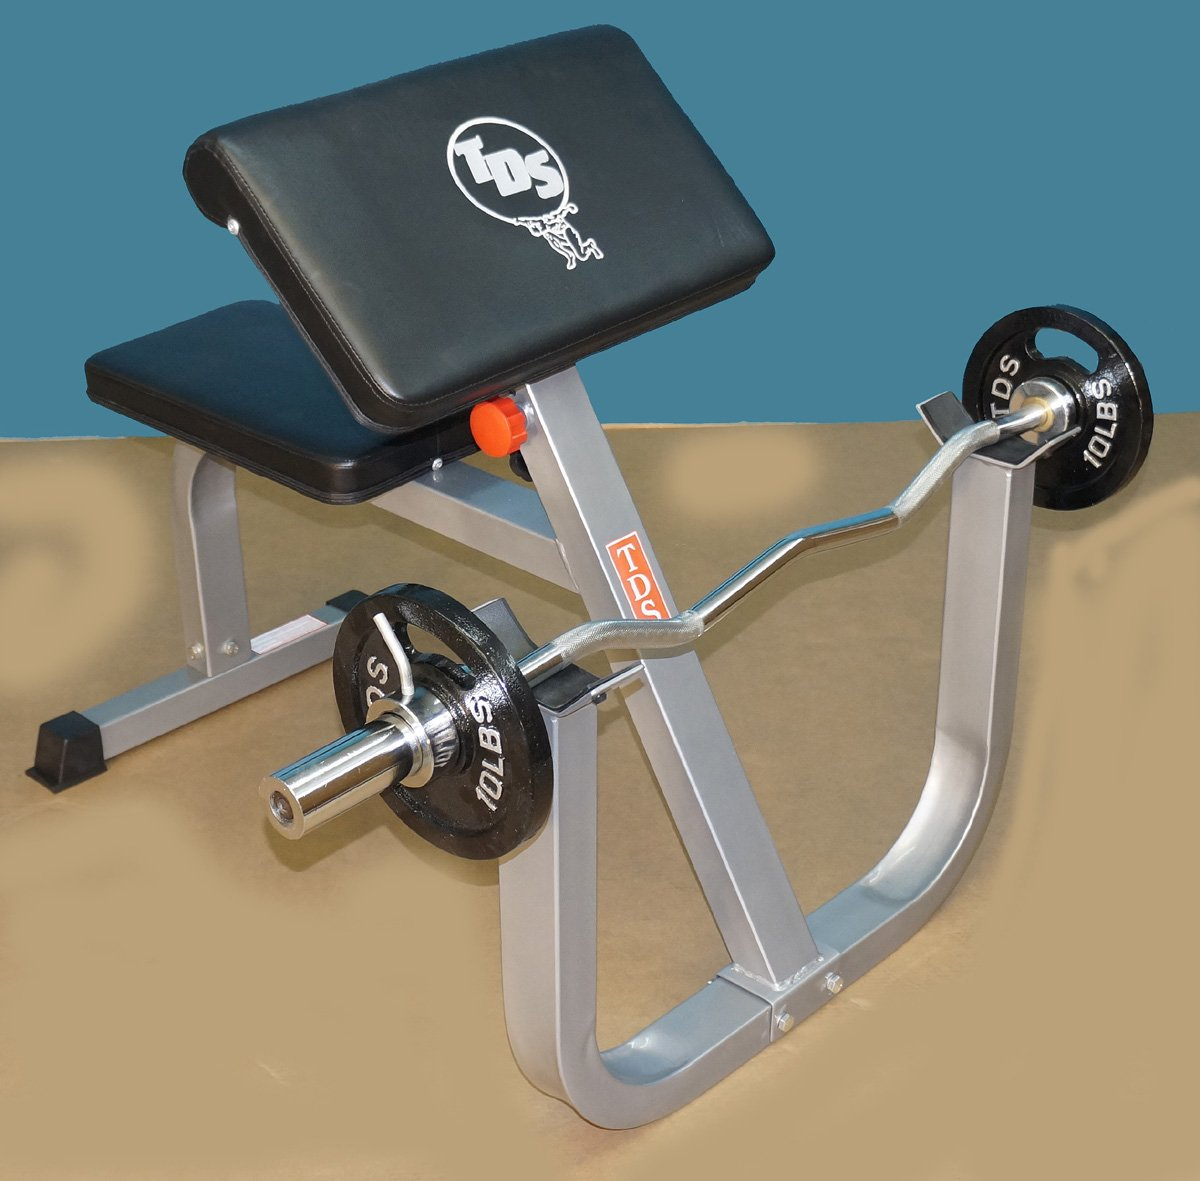 TDS Seated Arm Curl Unit (Preacher Curl Unit) by TDS